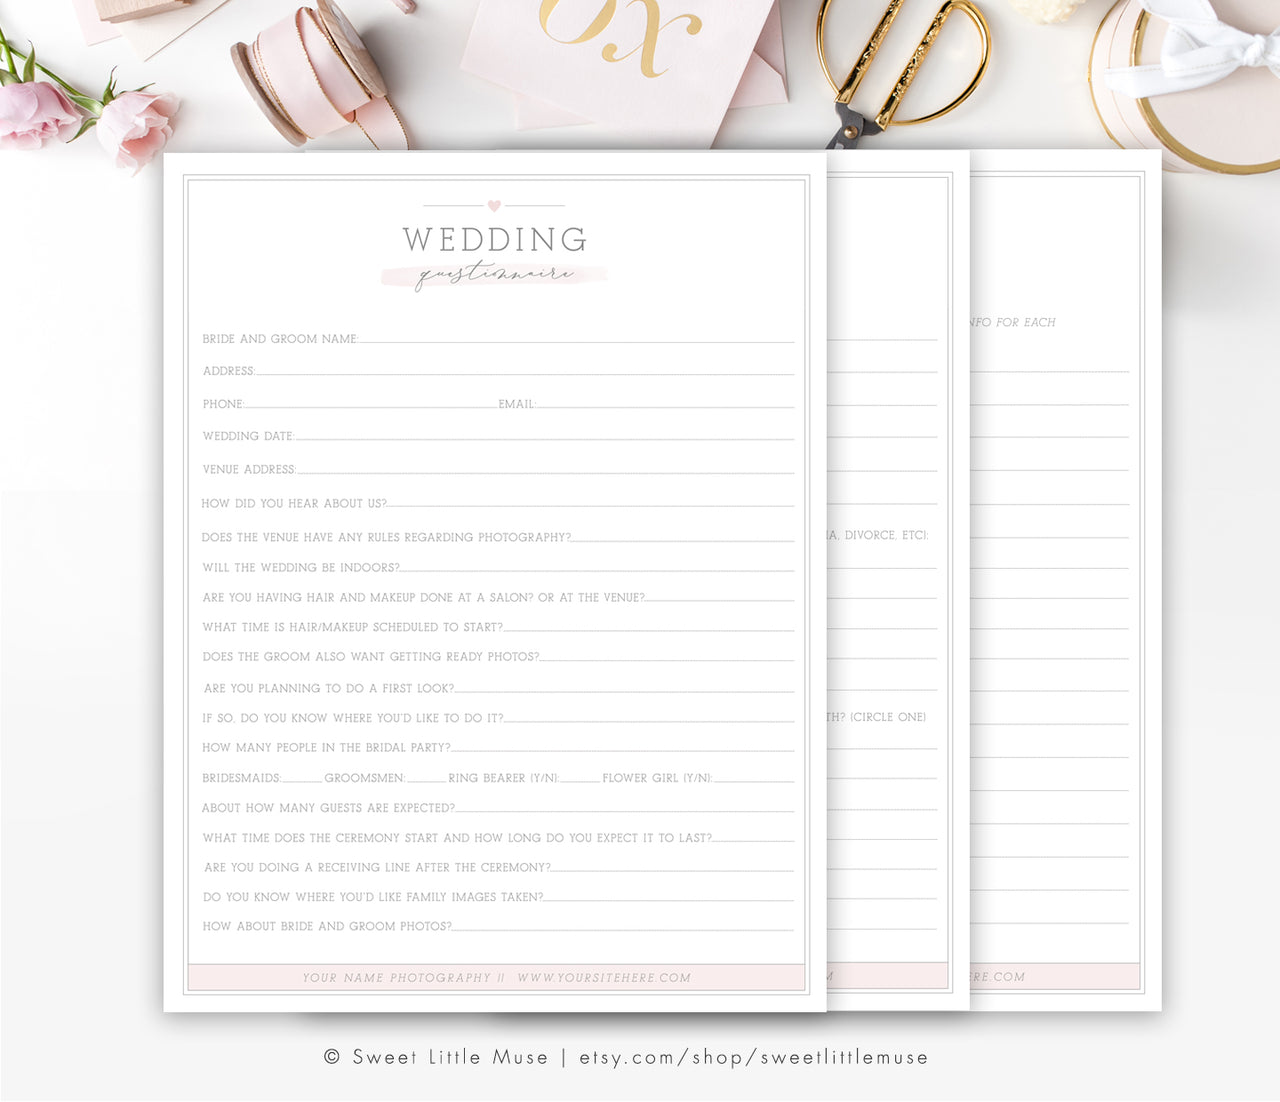 Wedding Photography Questionnaire - Business Forms